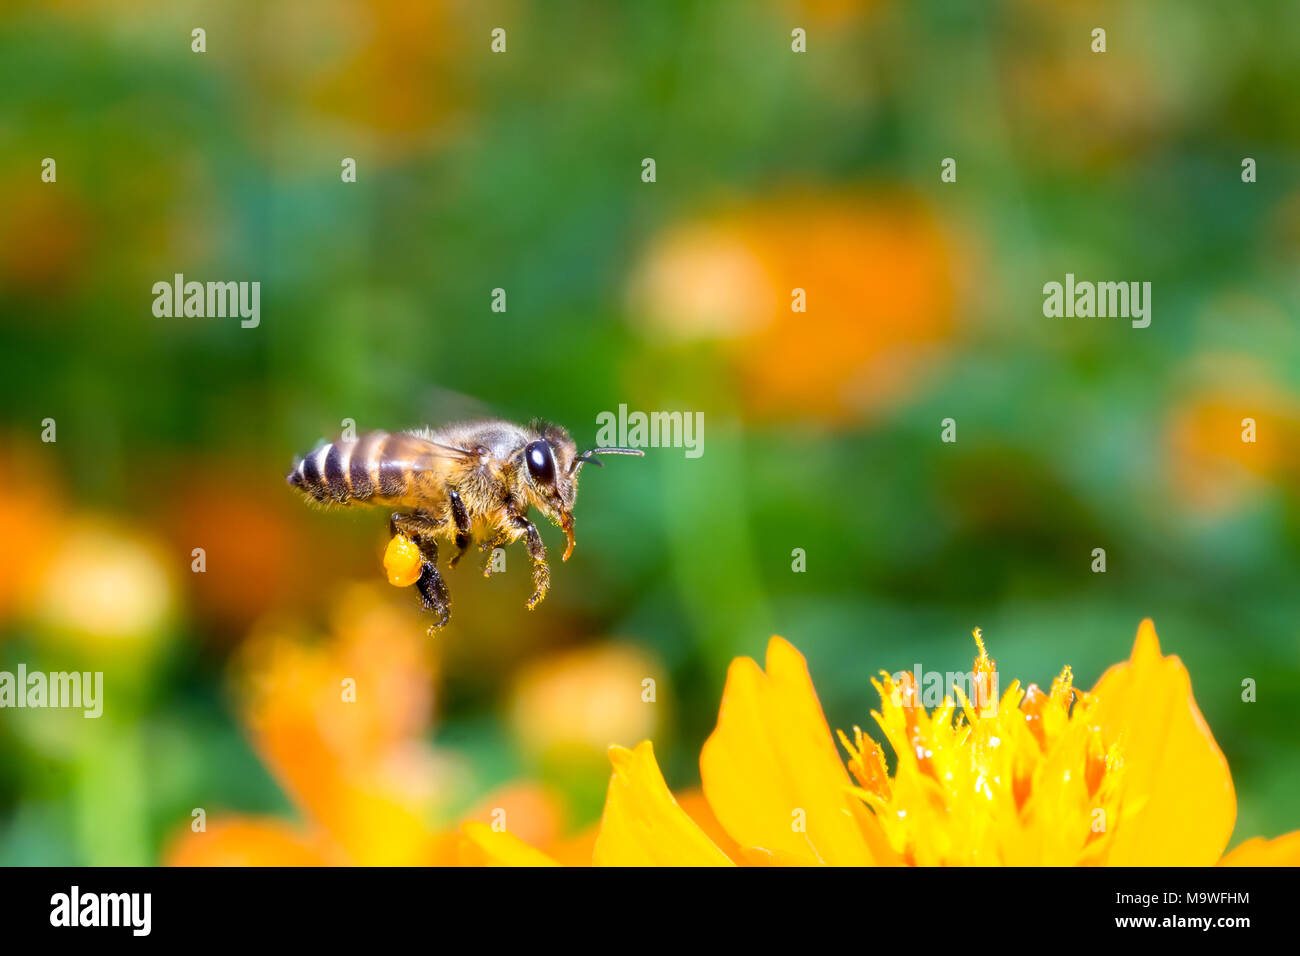 Flying bee hunting syrup in the garden - Stock Image